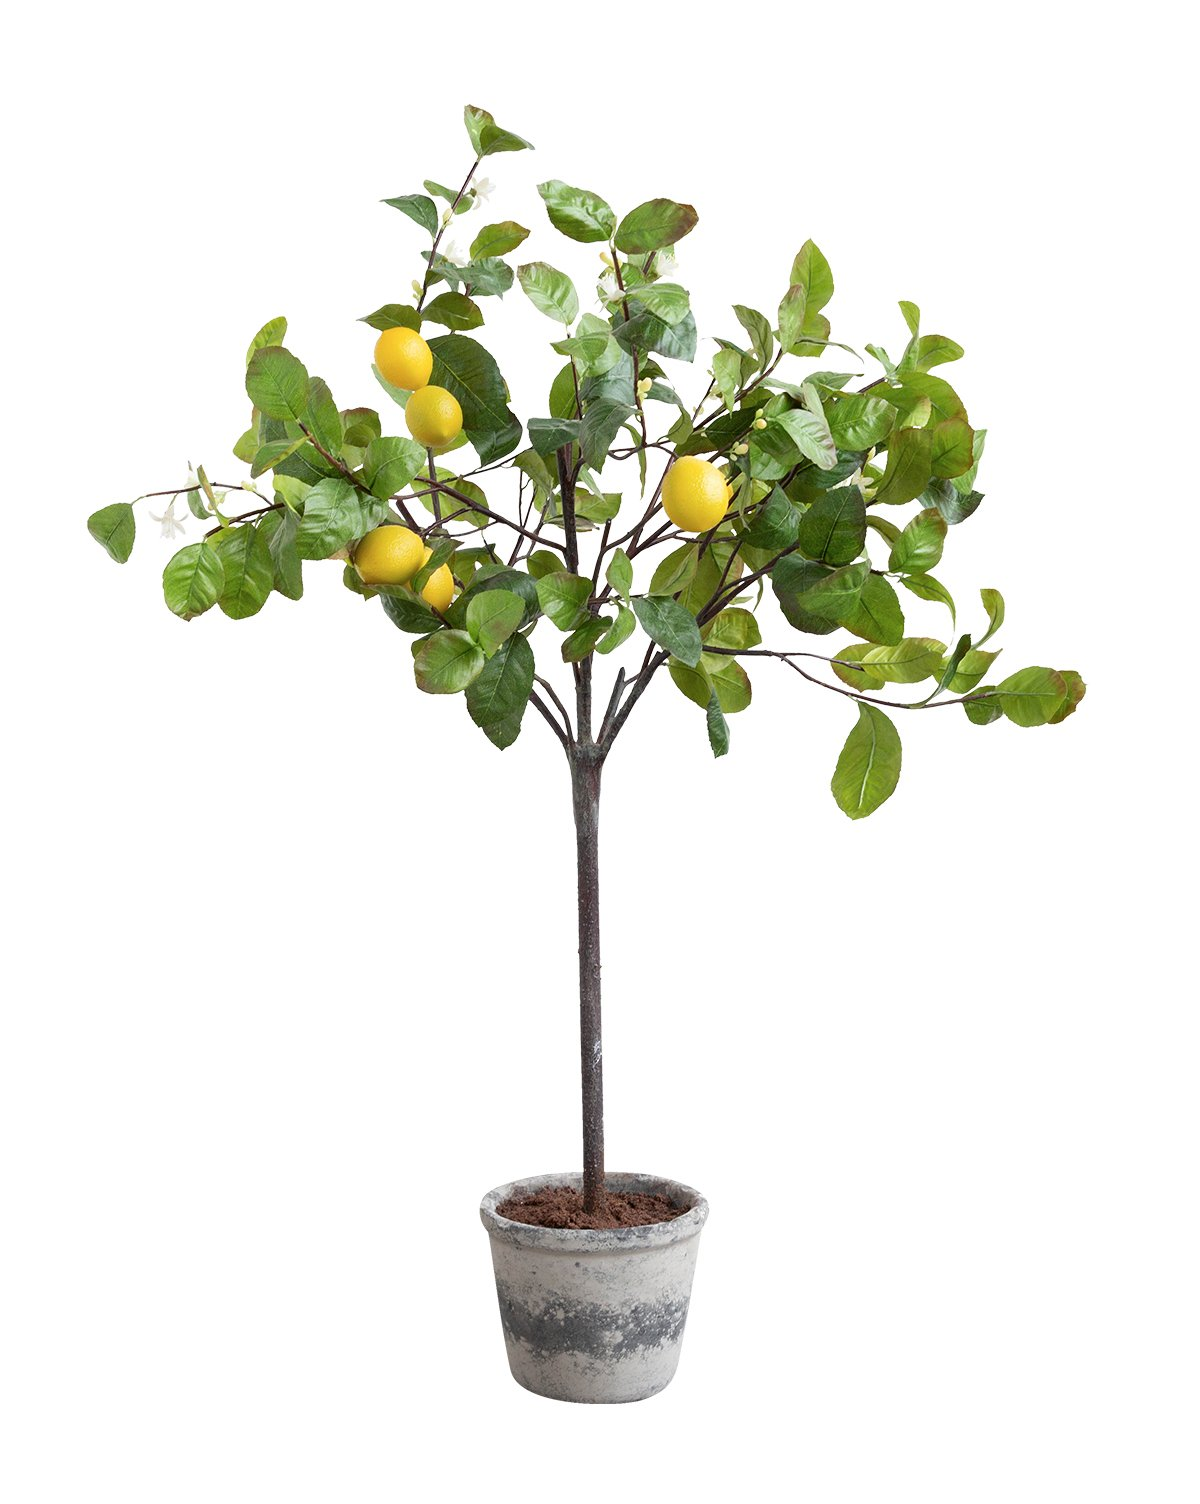 Faux_Potted_Lemon_Tree_1.jpg